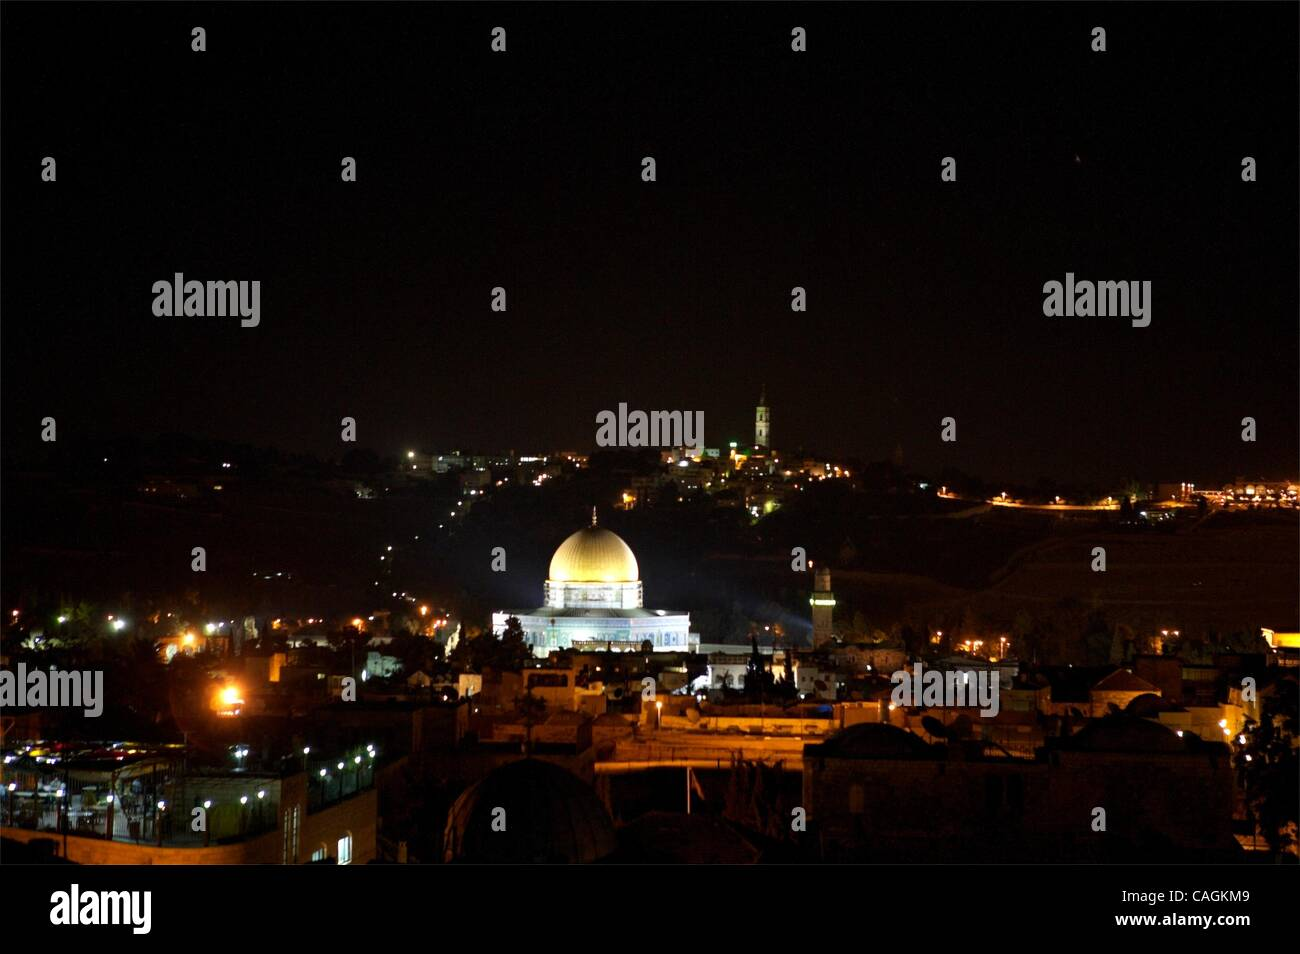 Feb 01, 2008 - Jerusalem, Israel - Mohammed Abuatarl sits for hours on the roof of the Petra Hotel, looking out - Stock Image